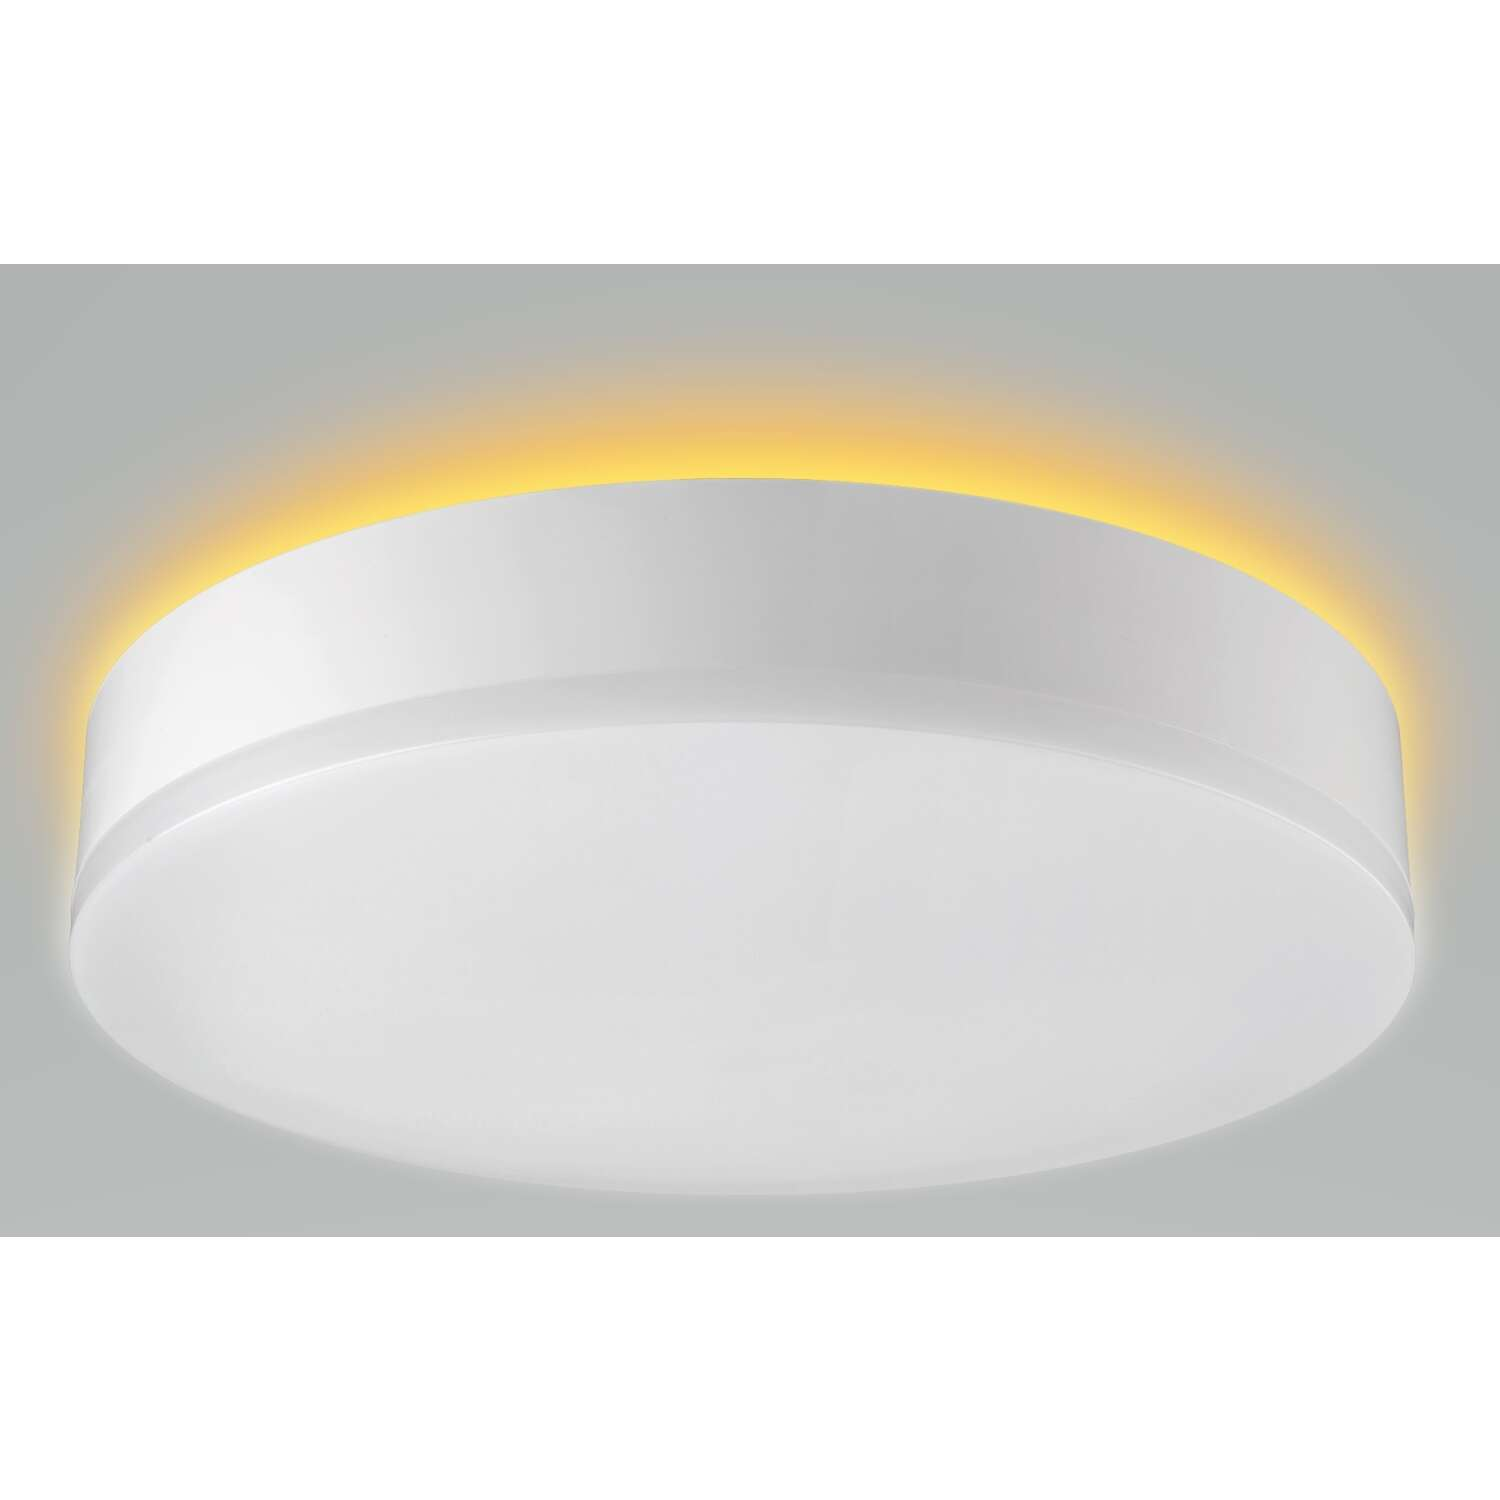 ETI  Color Preference  3.2 in. H x 11 in. W x 11 in. L White  LED Ceiling Light Fixture